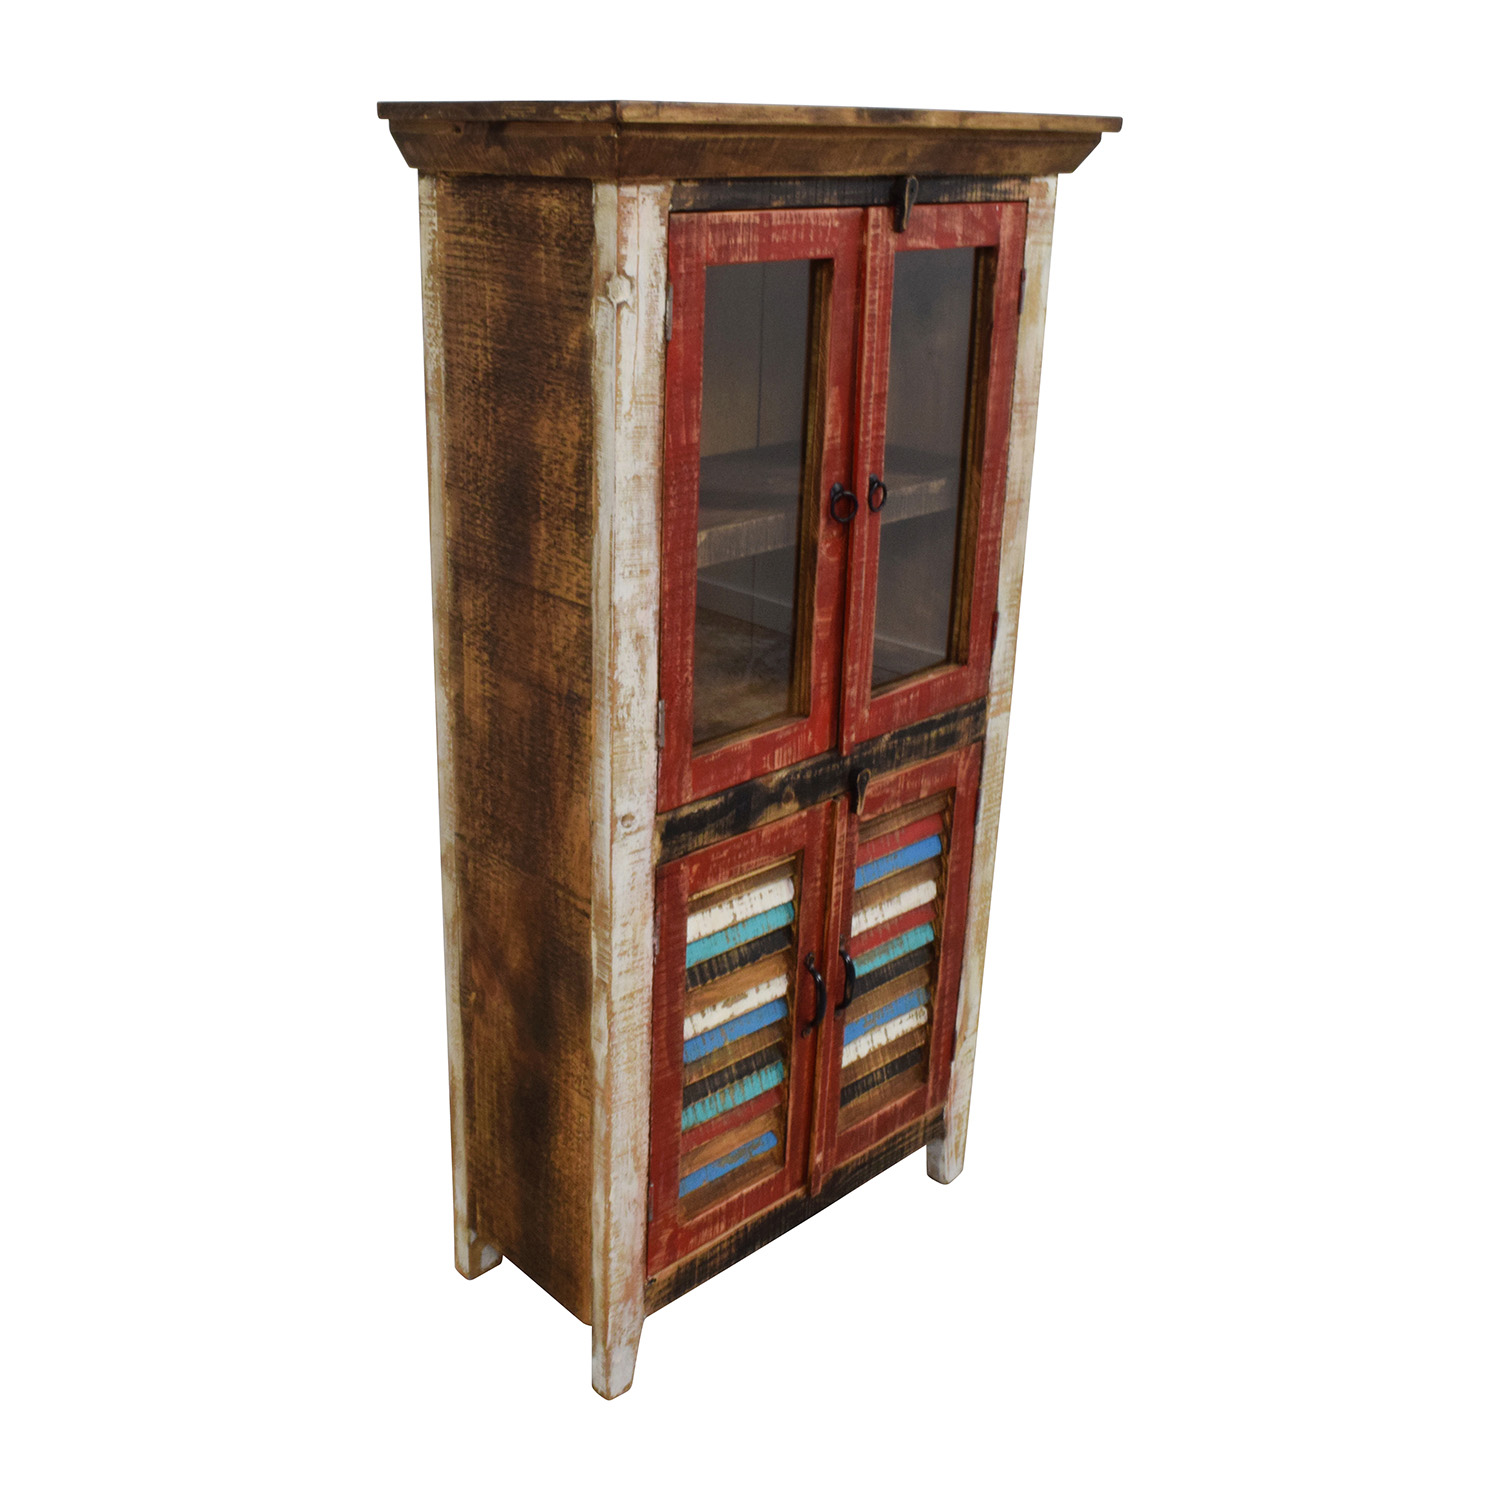 buy Antique Rustic Glass and Wood Cabinet Horizon Home Cabinets & Sideboards